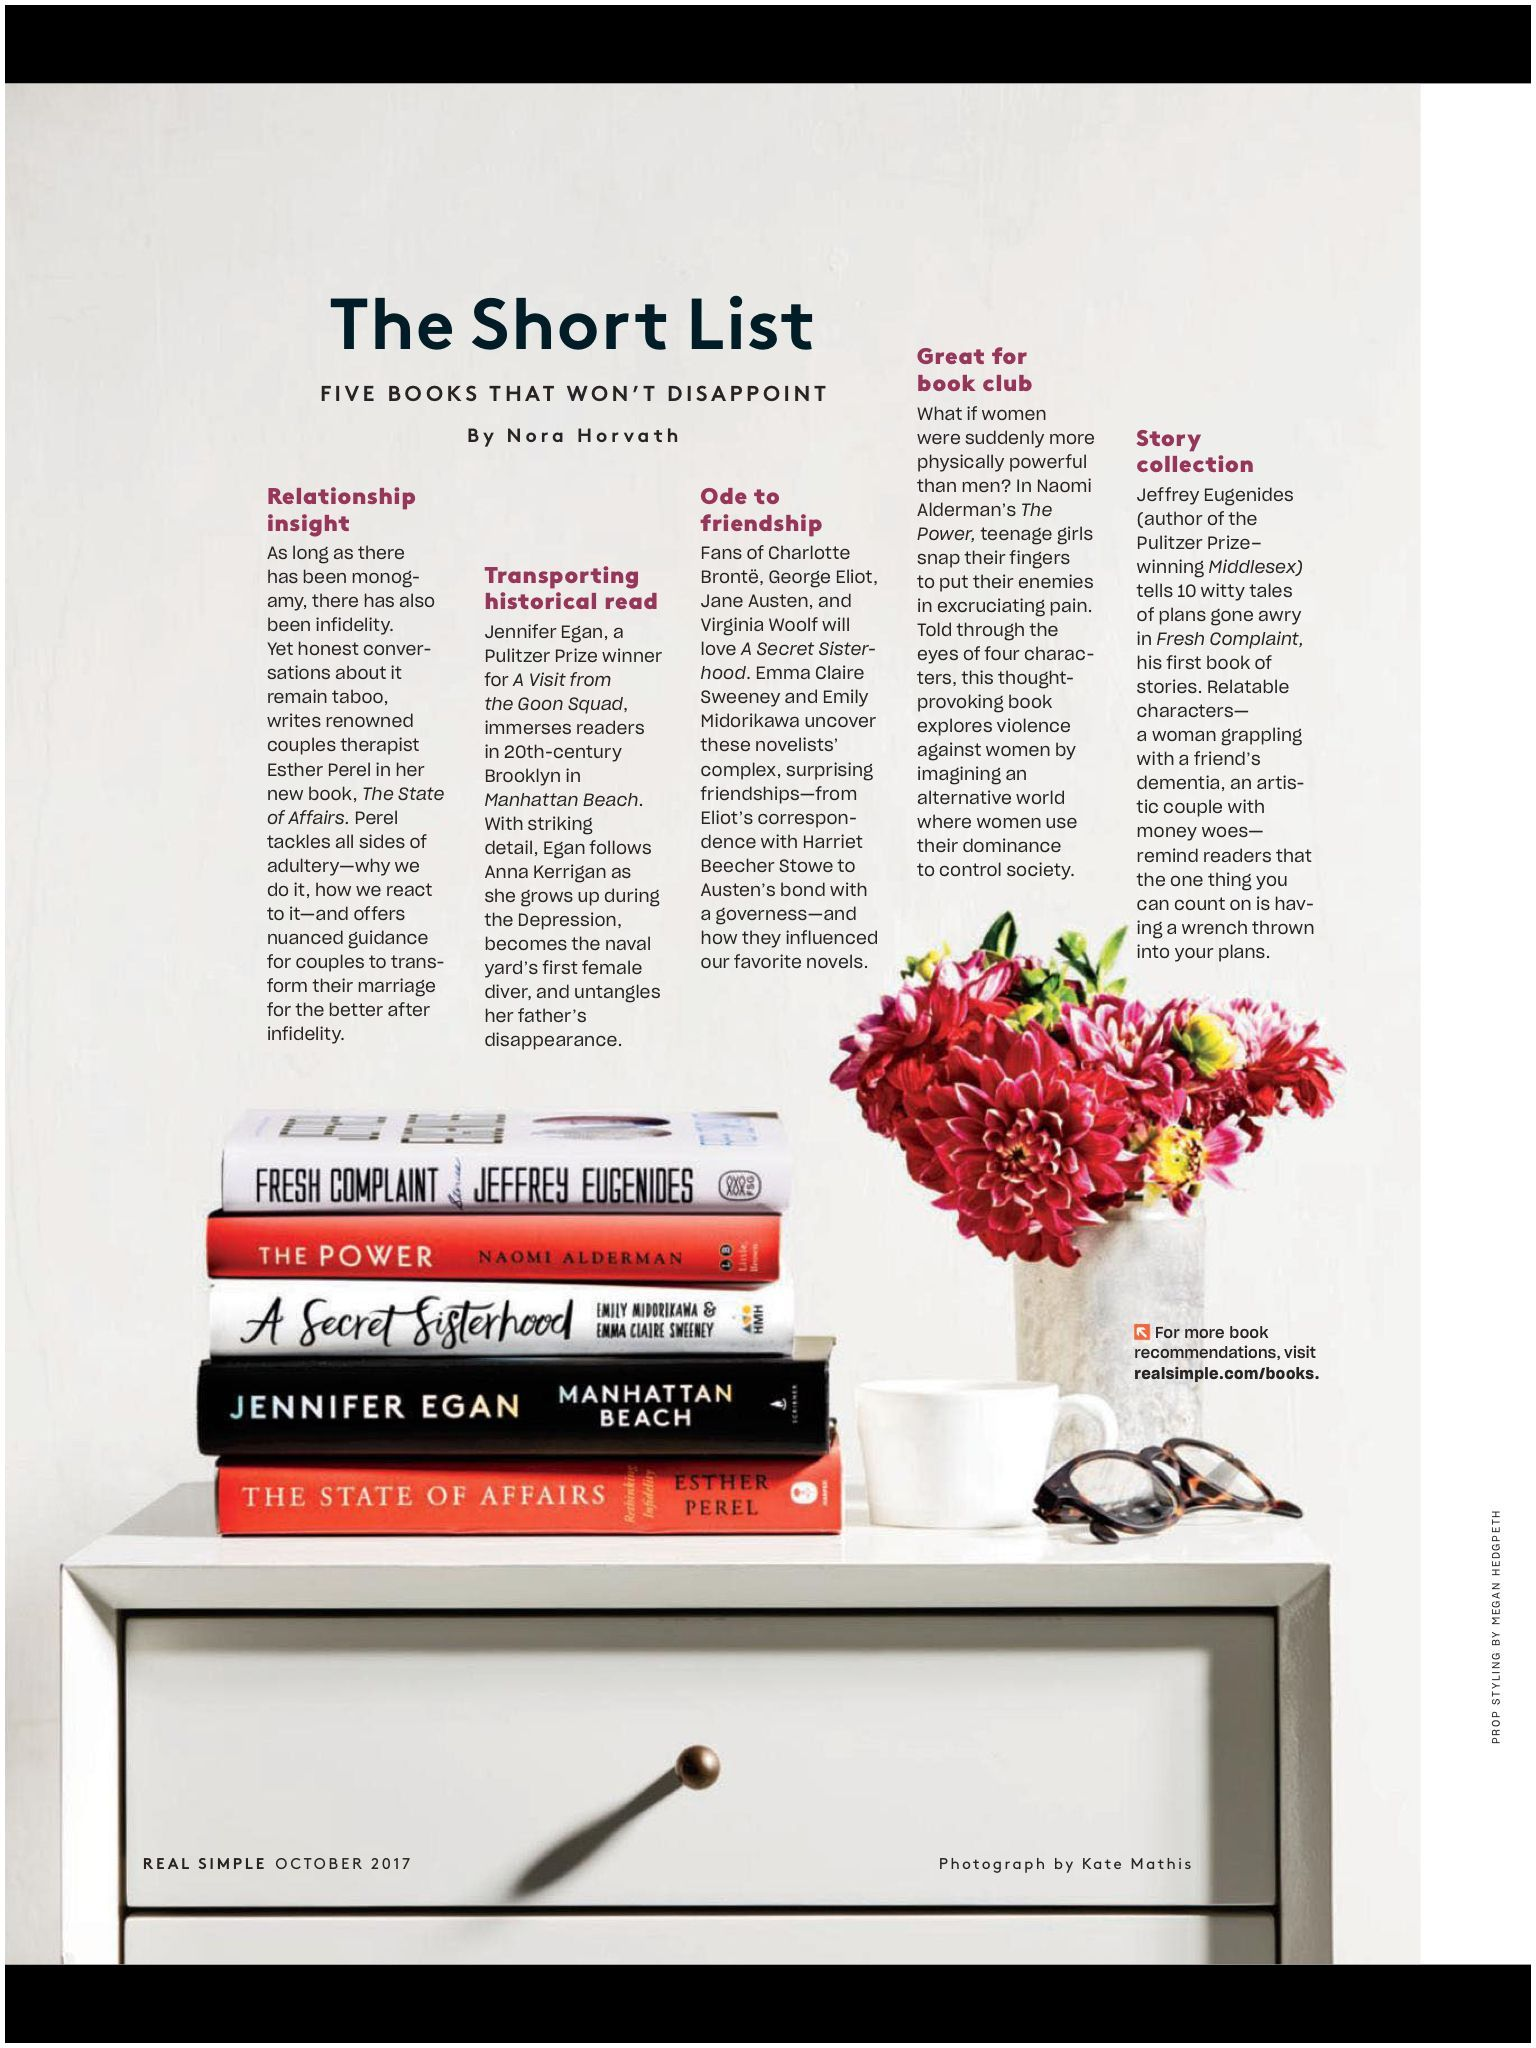 "Good Magazines to Read the Short List"" From Real Simple October 2017 Read It On the"